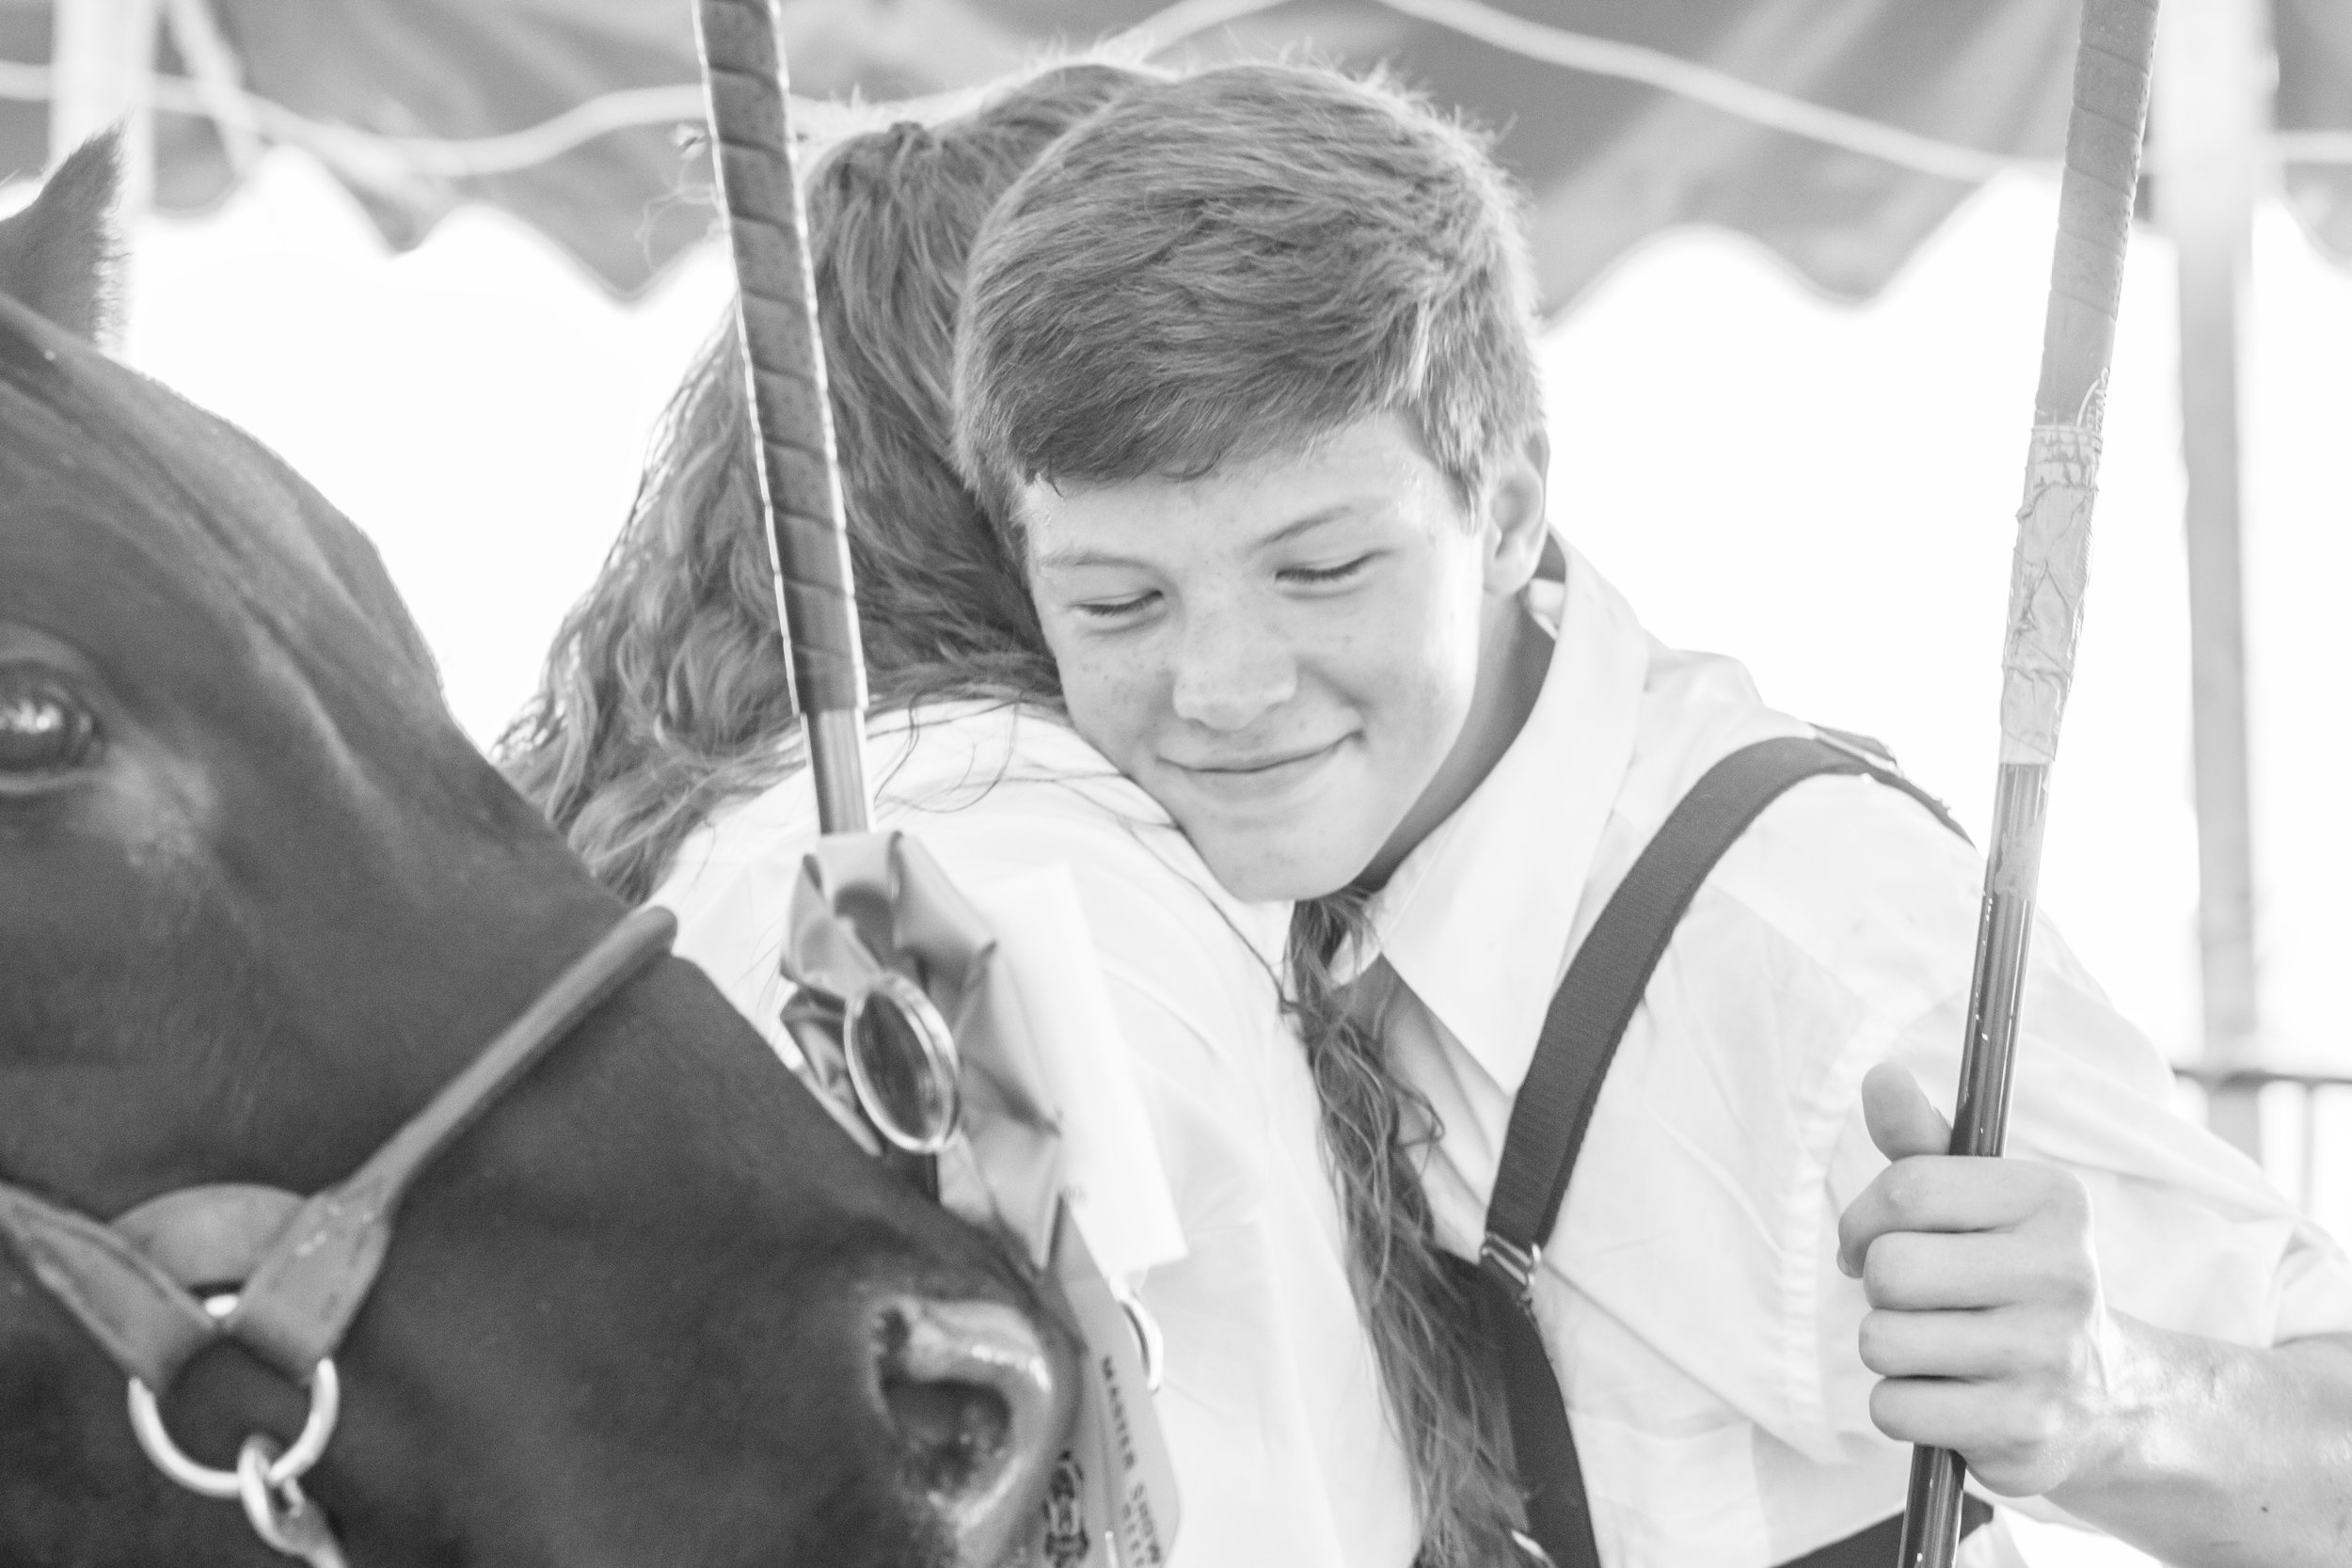 Travis Fields, hugging his long time friend, Margo Sweeney, after they won Grand and Reserve Grand Champion Steer at the 2016 Thurmont and Emmitsburg Community Show.